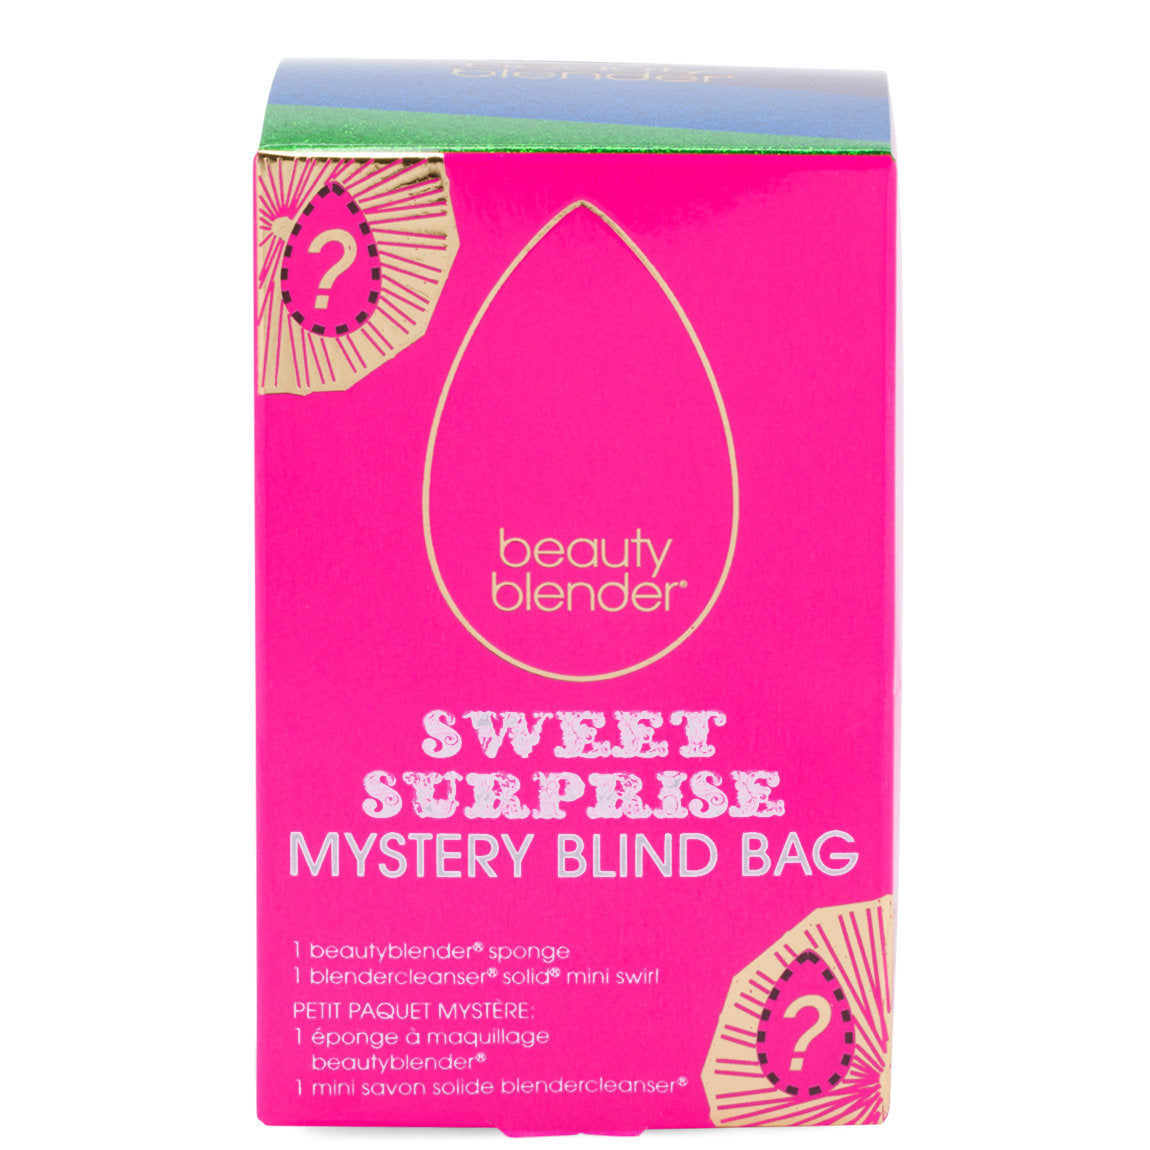 This is a mystery beauty blender, the inside product is unknown but shown is a bright pink box with white lettering.